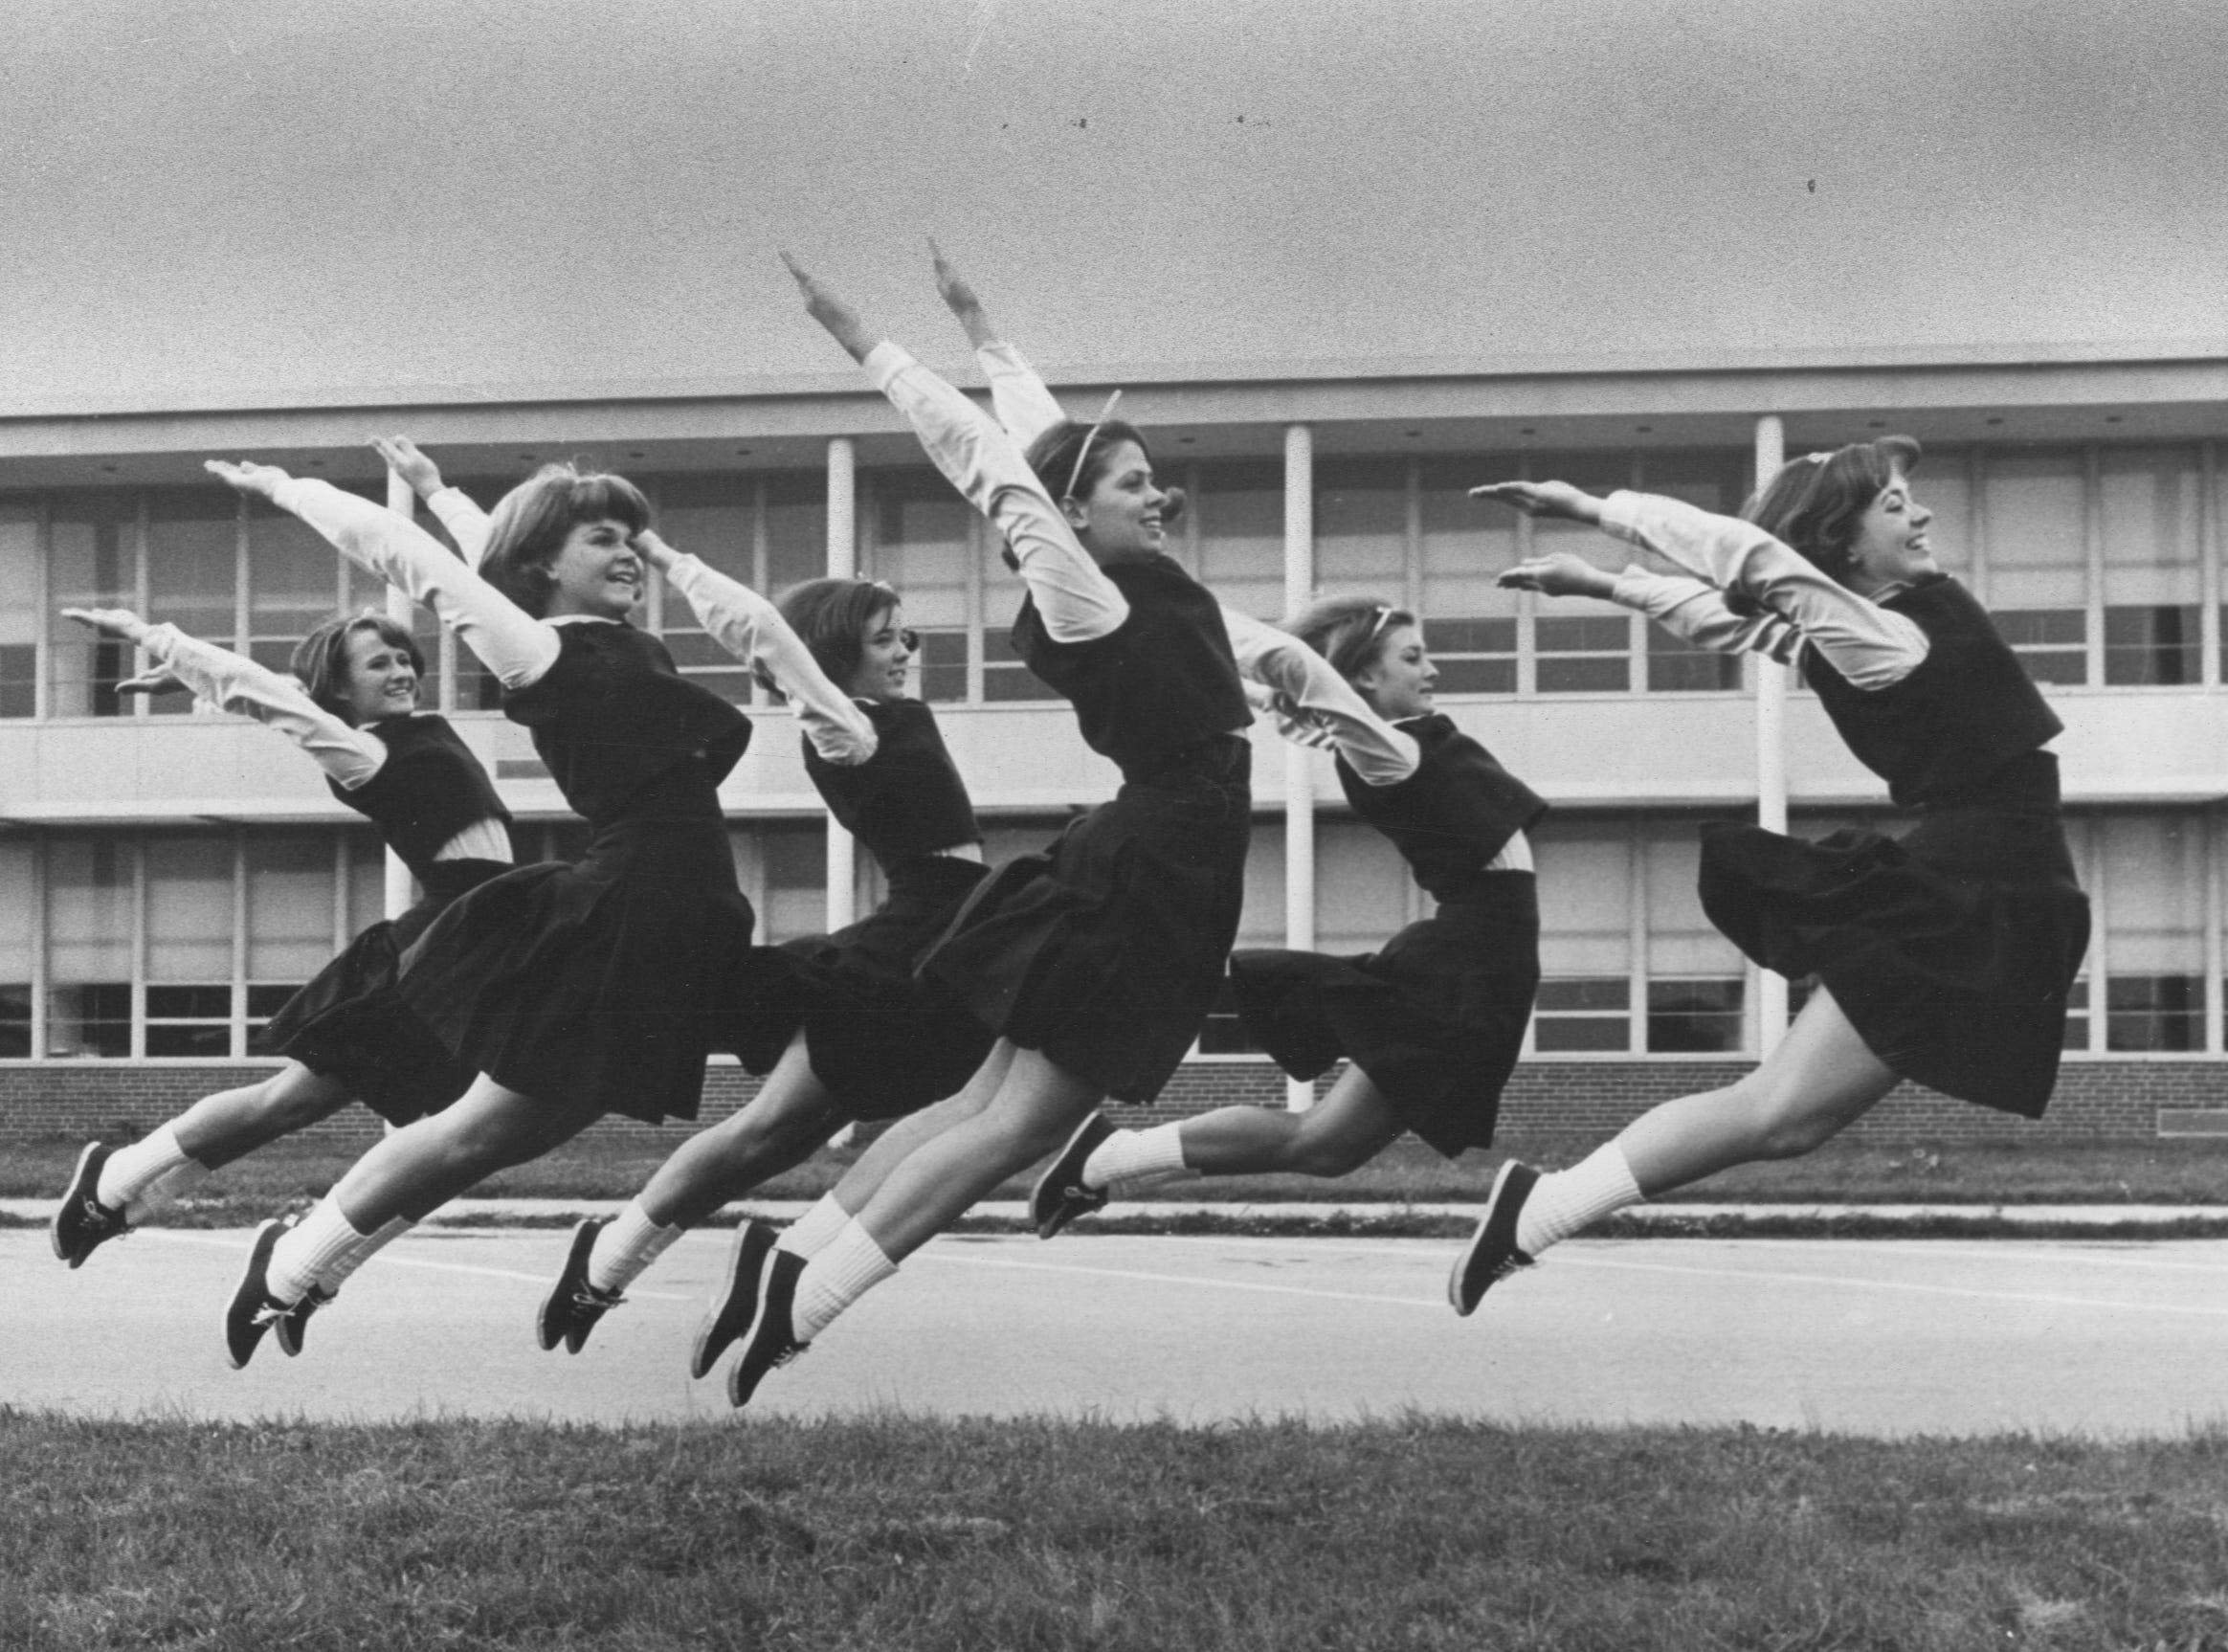 """Franklin County High School's cheerleaders have a most appropriate name, """"The Flyers.""""Oct 10, 1965"""